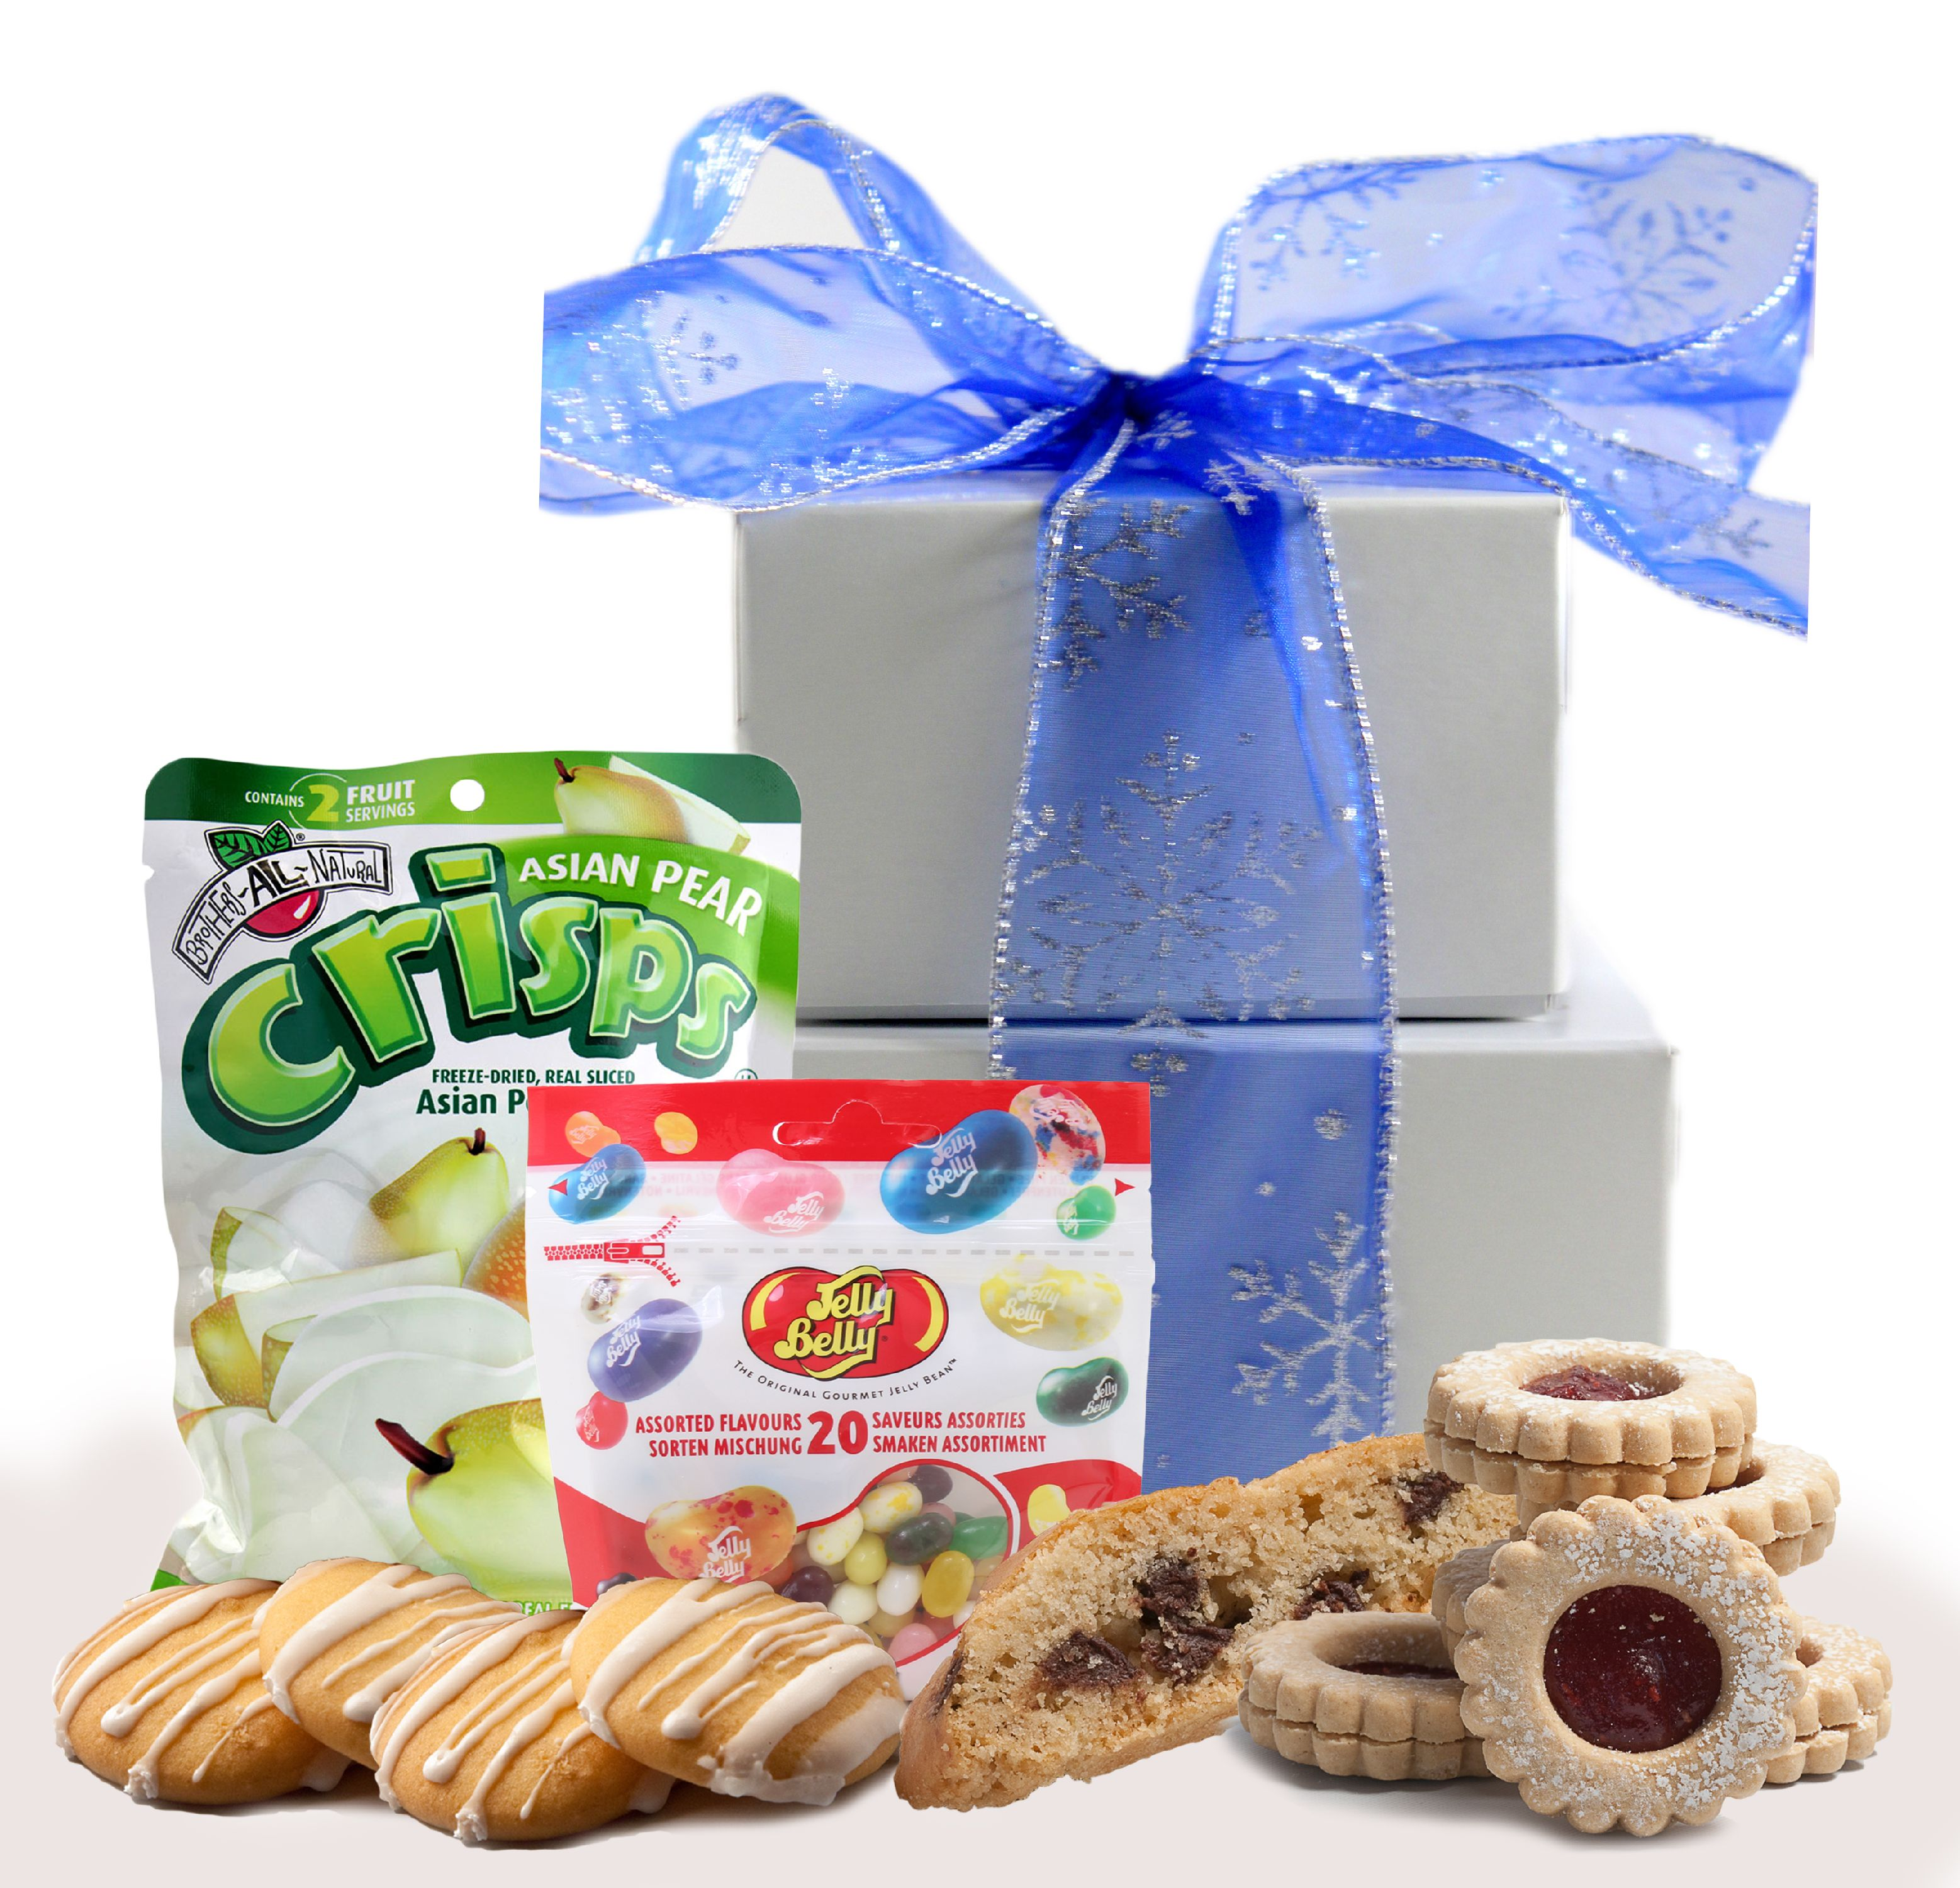 Gluten Free Palace Seasons Greetings! Gluten Free Small Gift Tower, 1.5 Lb.